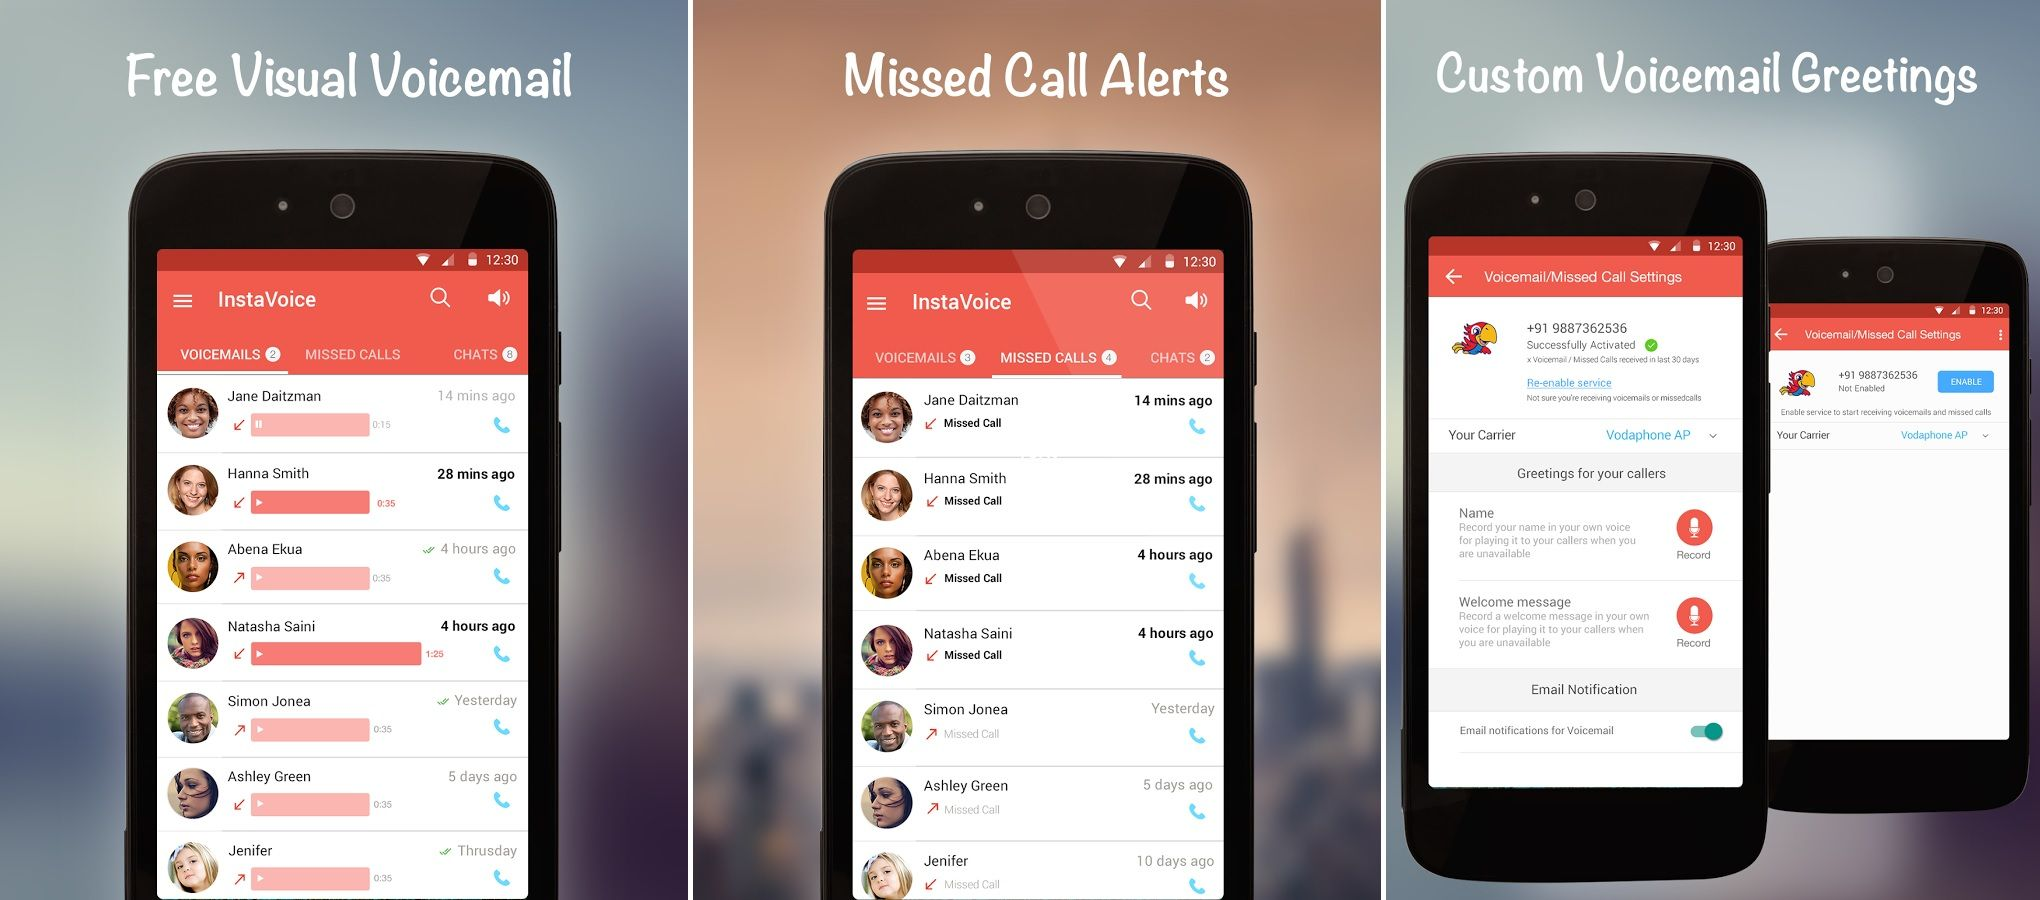 Get free missed call alerts with the InstaVoice app for